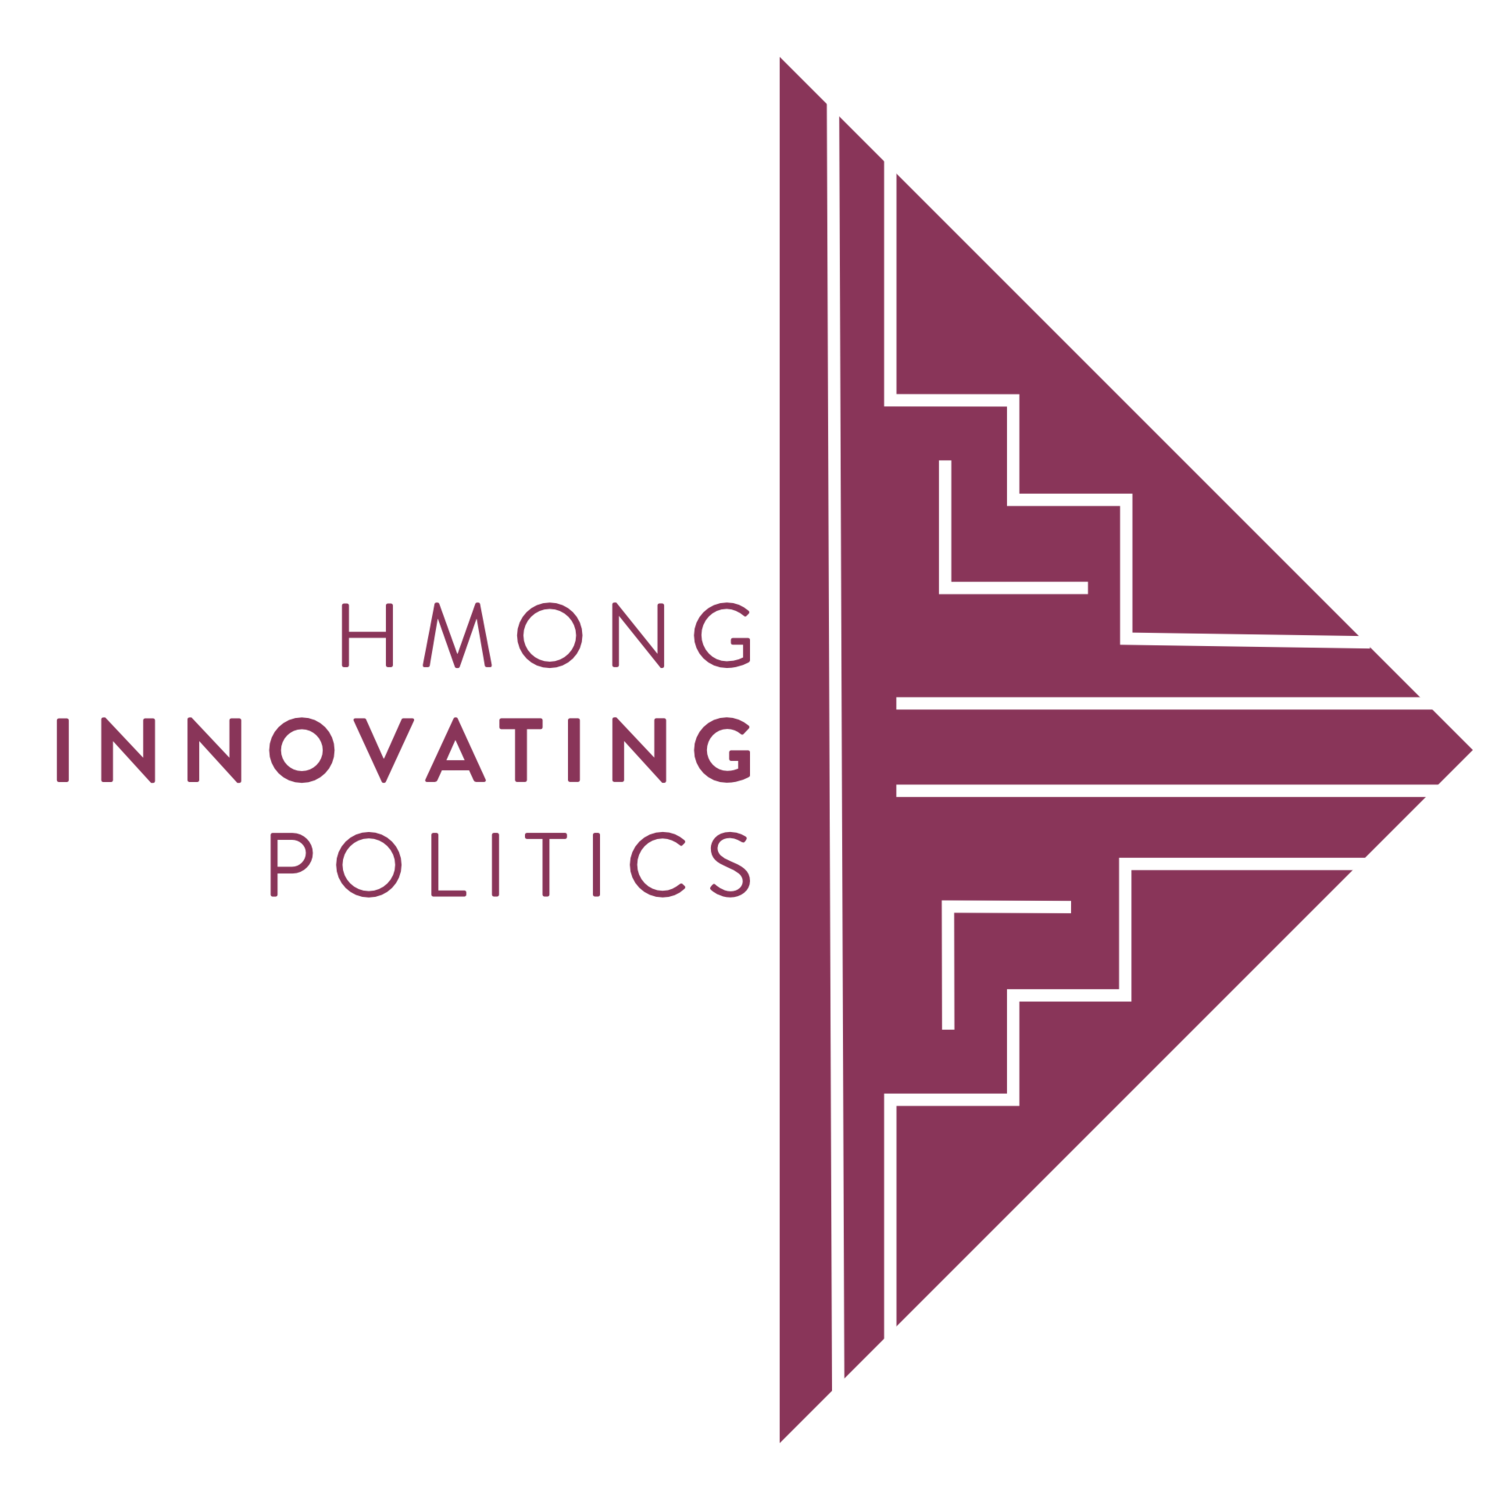 Hmong Innovating Politics